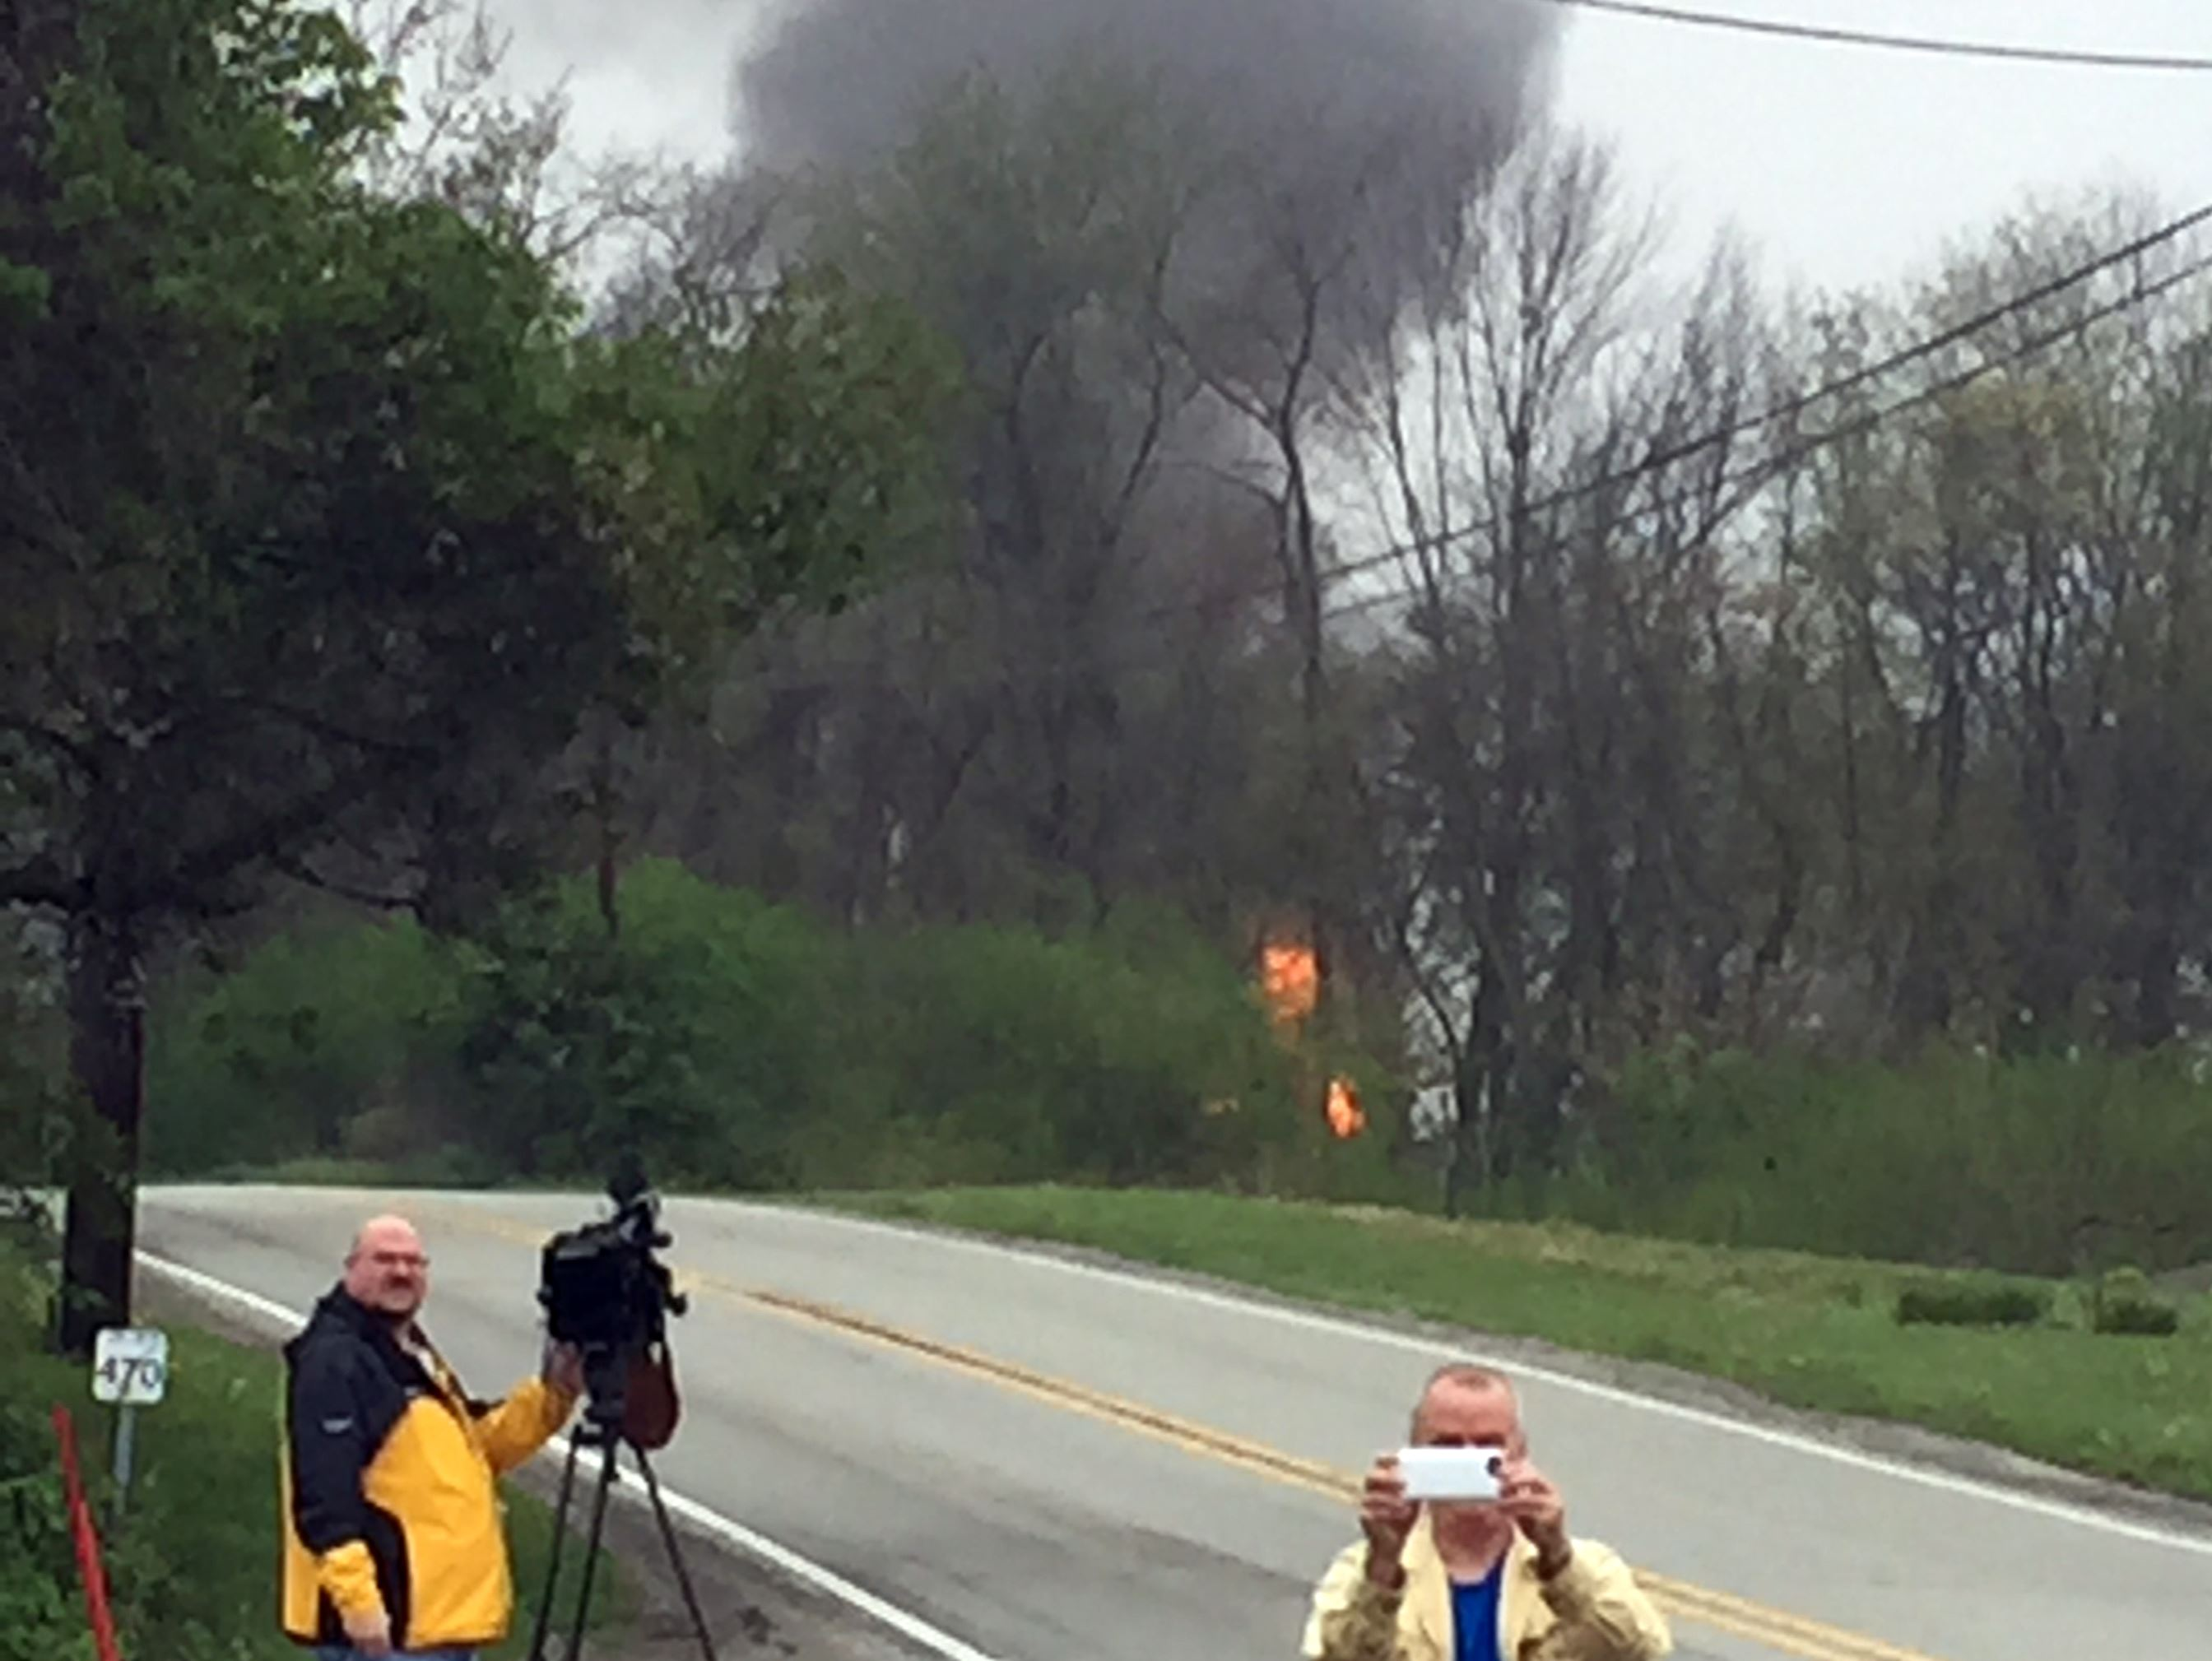 20160429dsGasWellFire3-2-2 People gather Sunday in Salem Township near the scene of a pipeline that exploded on Friday, injuring one man, damaging several homes and disrupting gas flows to the Northeast.